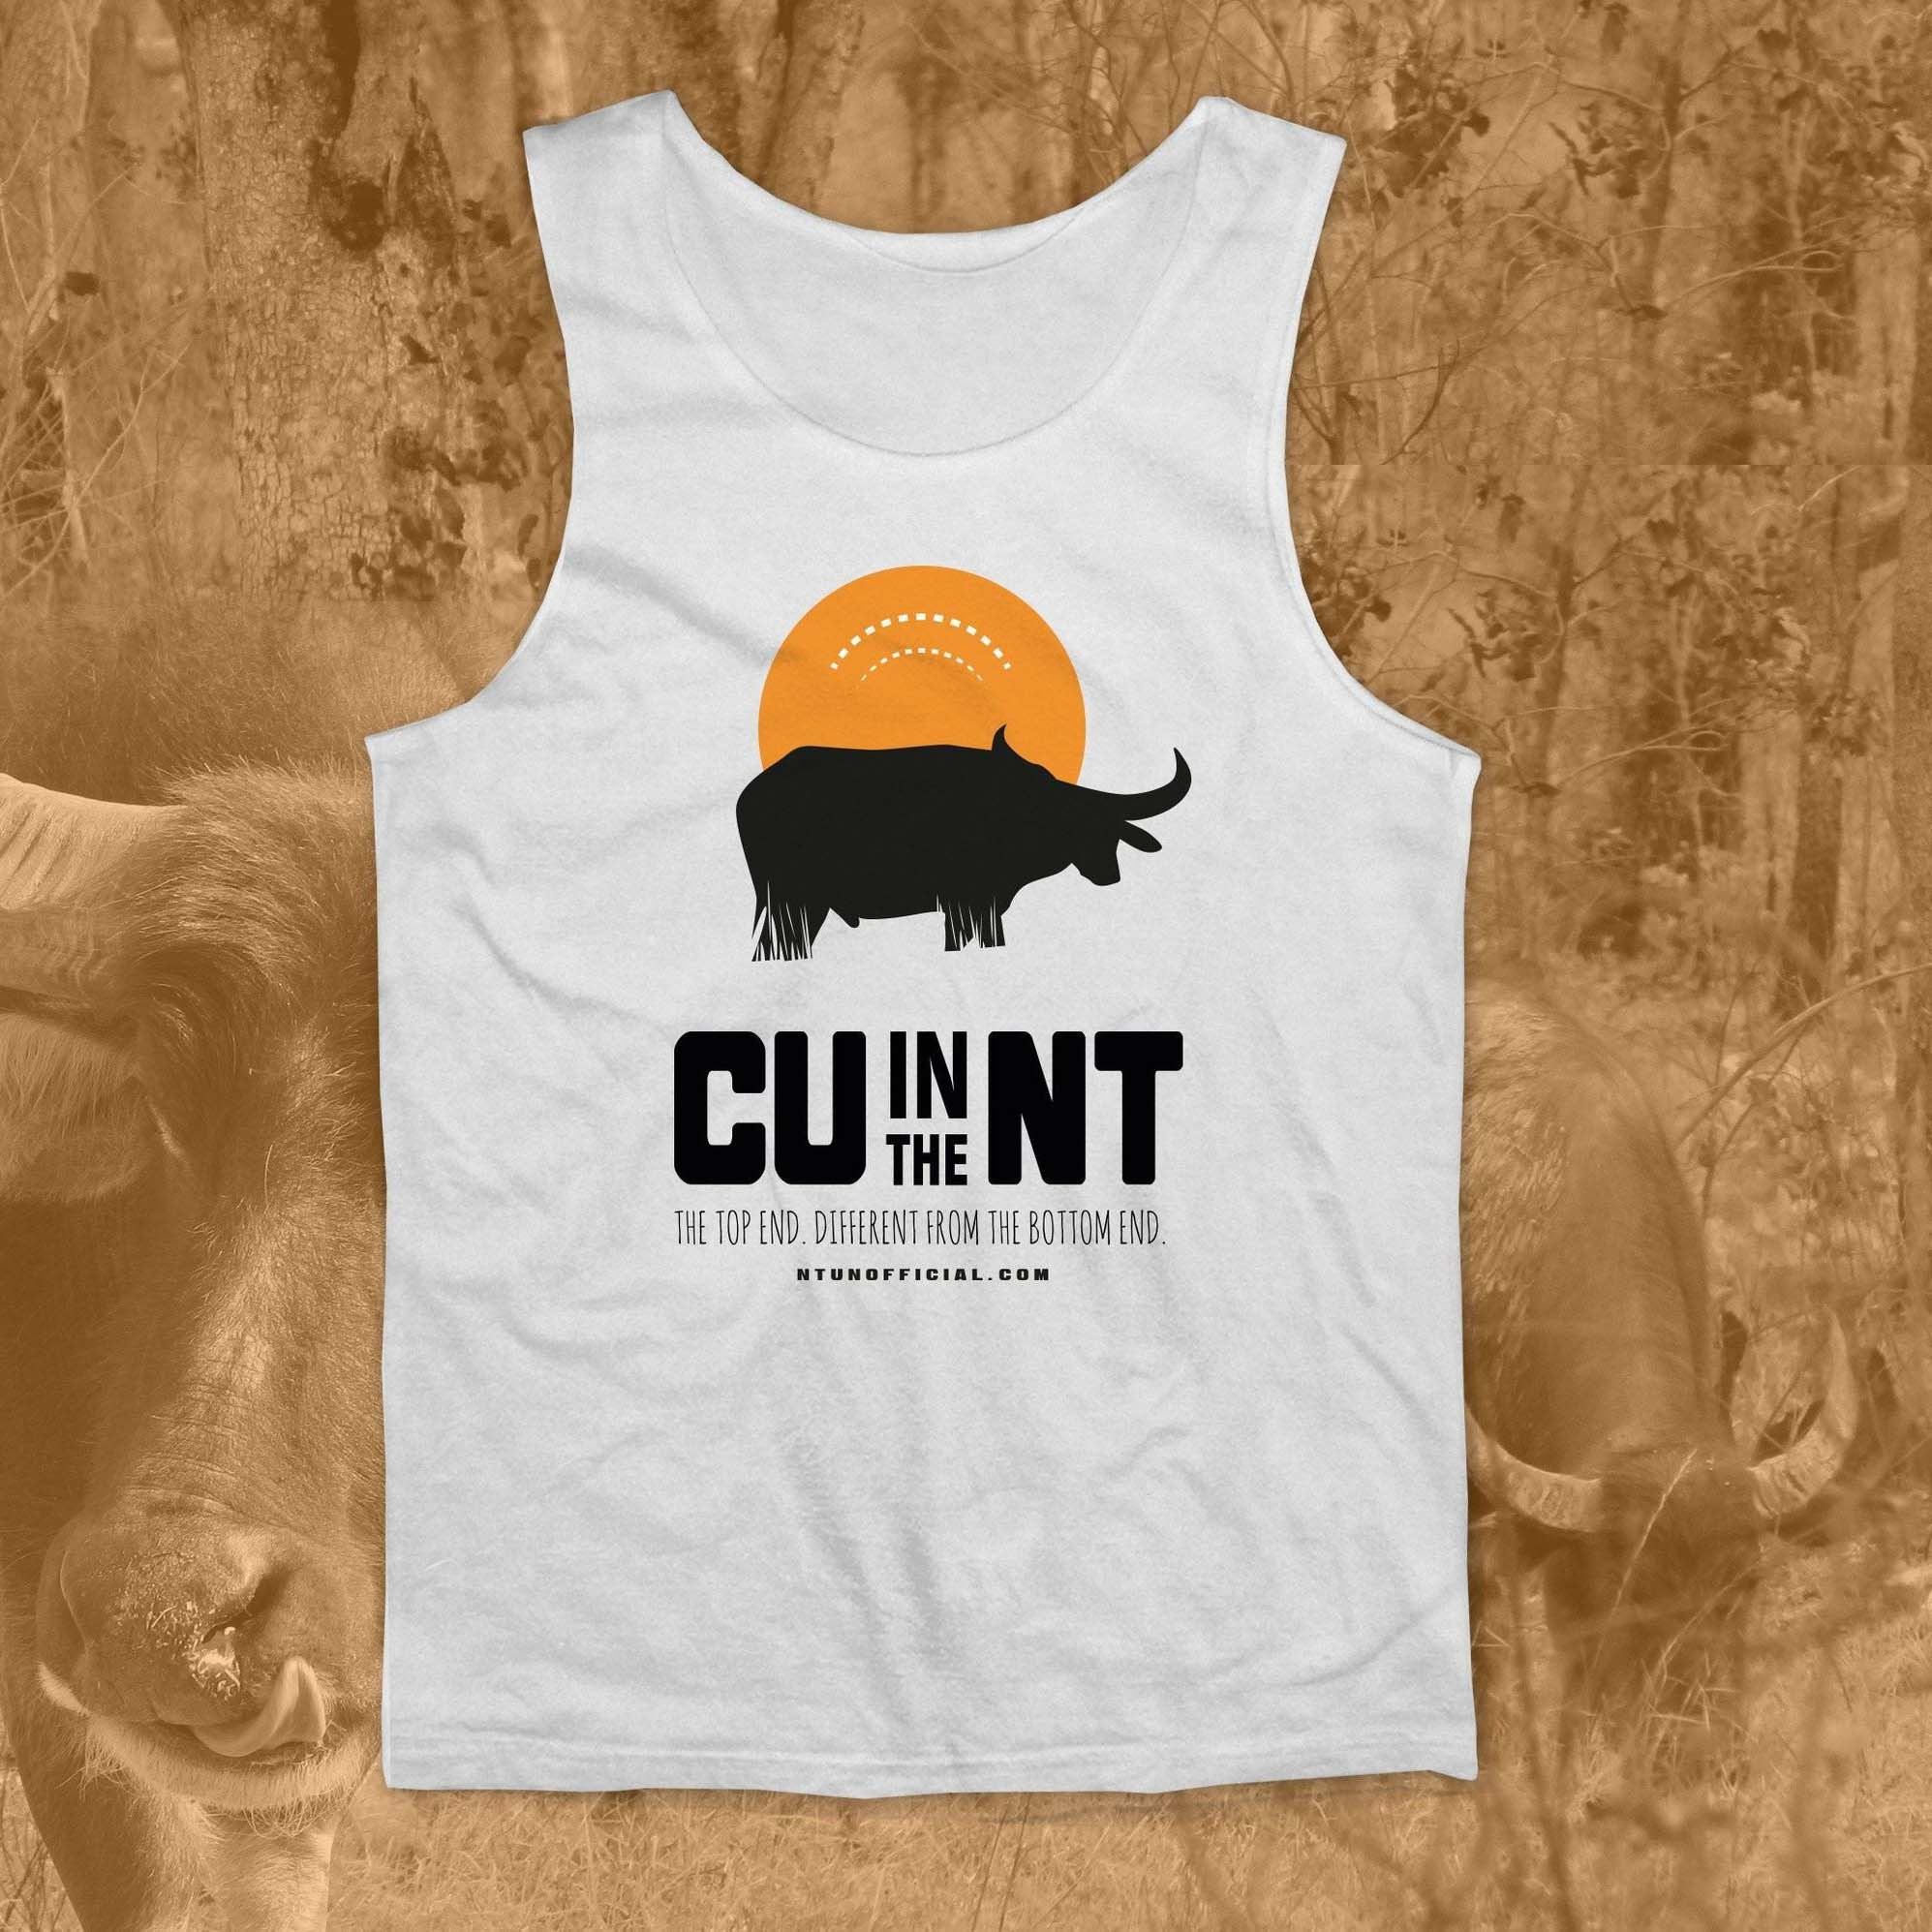 CU in the NT - White Buffalo Singlet